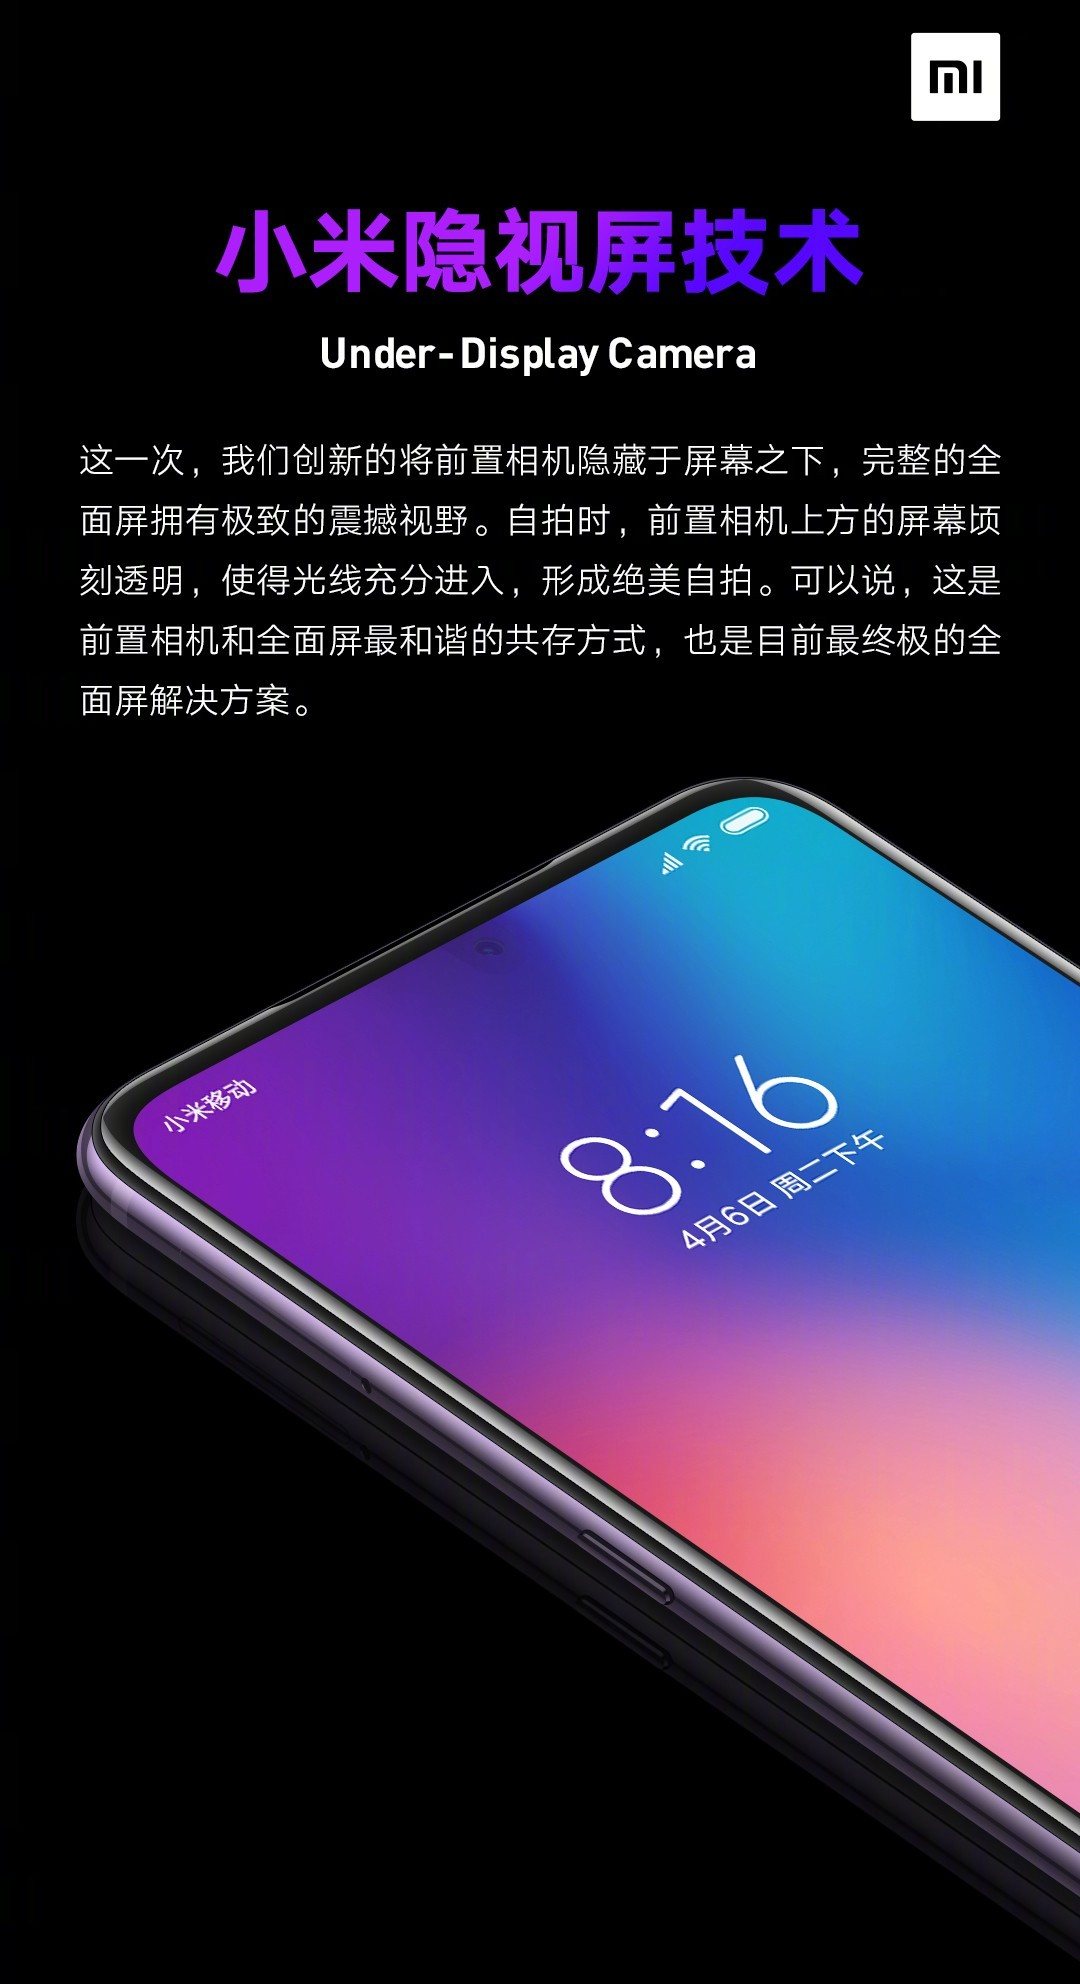 Xiaomi Under Display Camera Technology Announced 1